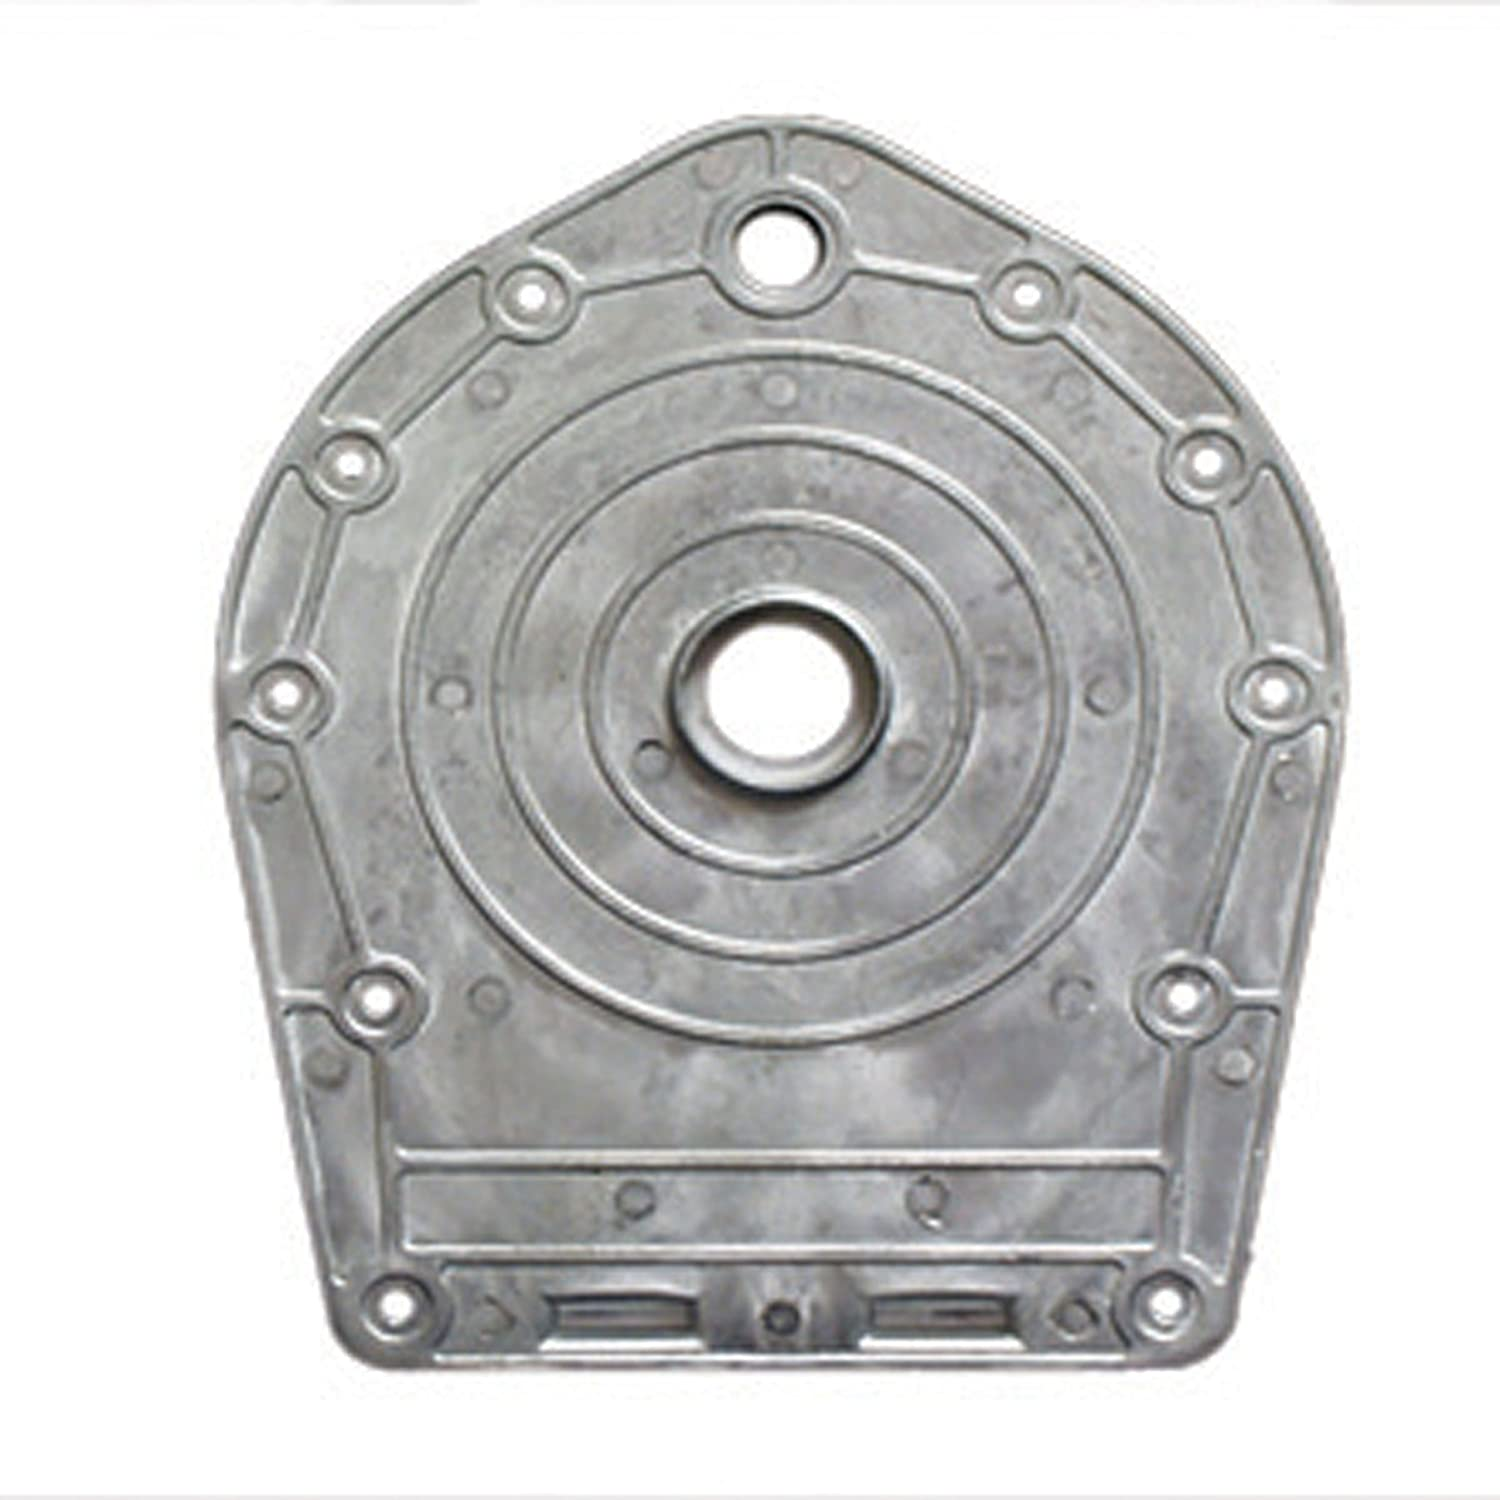 Winegard RP-3523 Antenna Base Plate Kit NOSYJ